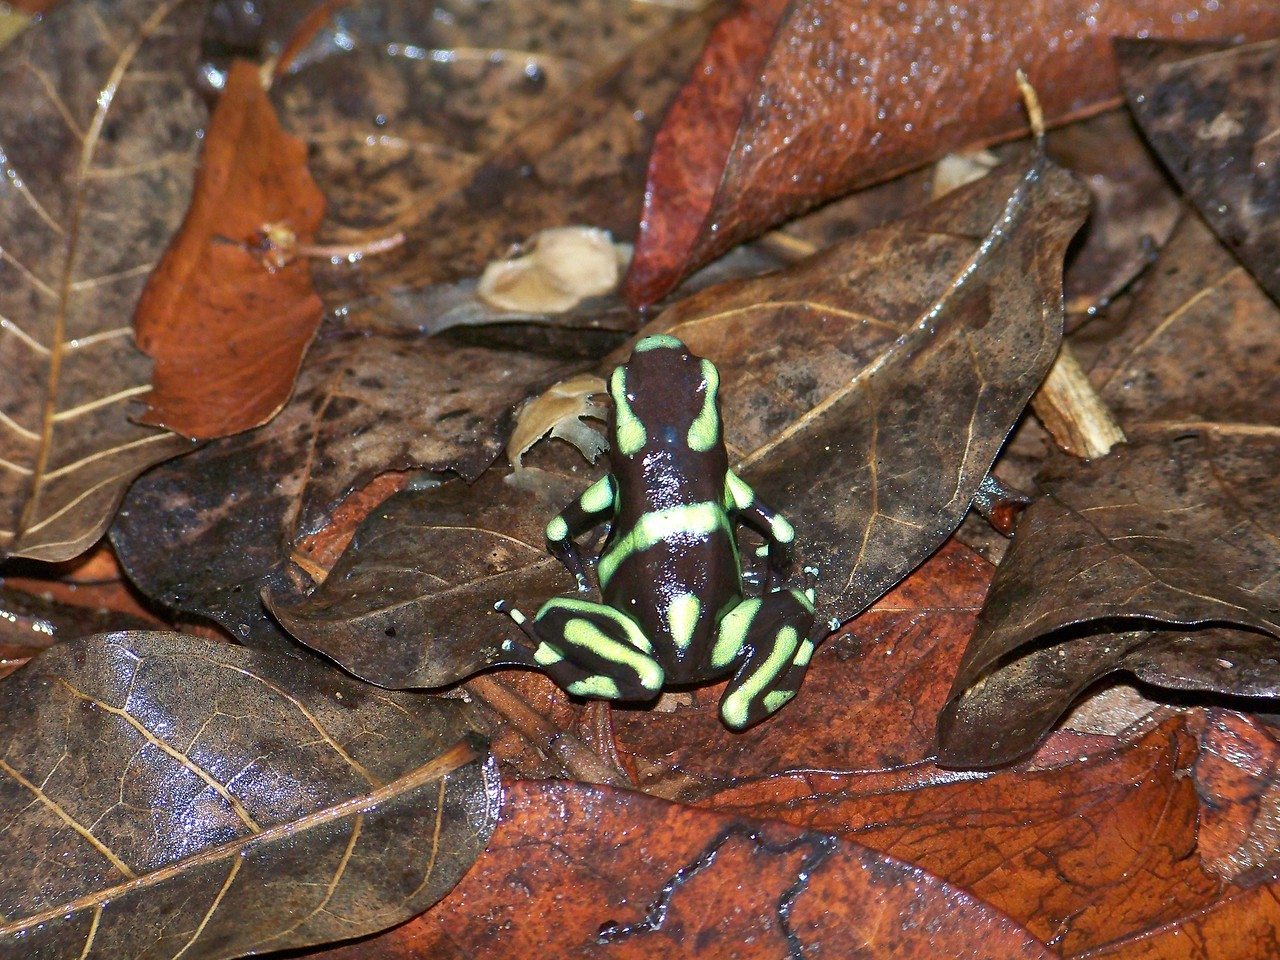 The green and black poison dart frog, Panama. This frog also lives near me in Costa Rica.